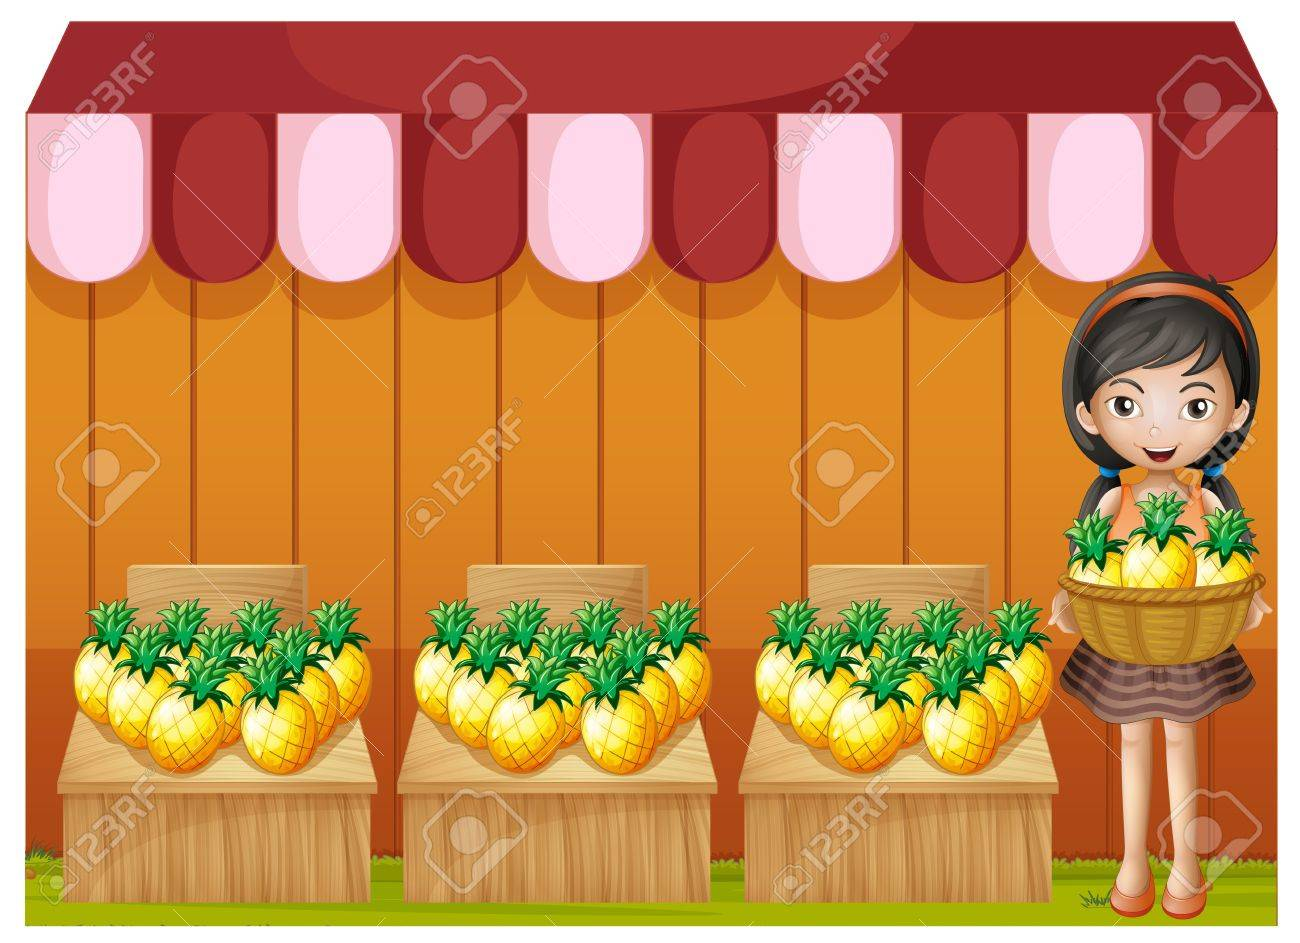 Illustration of a girl selling pineapples on a white background Stock Vector - 20888970